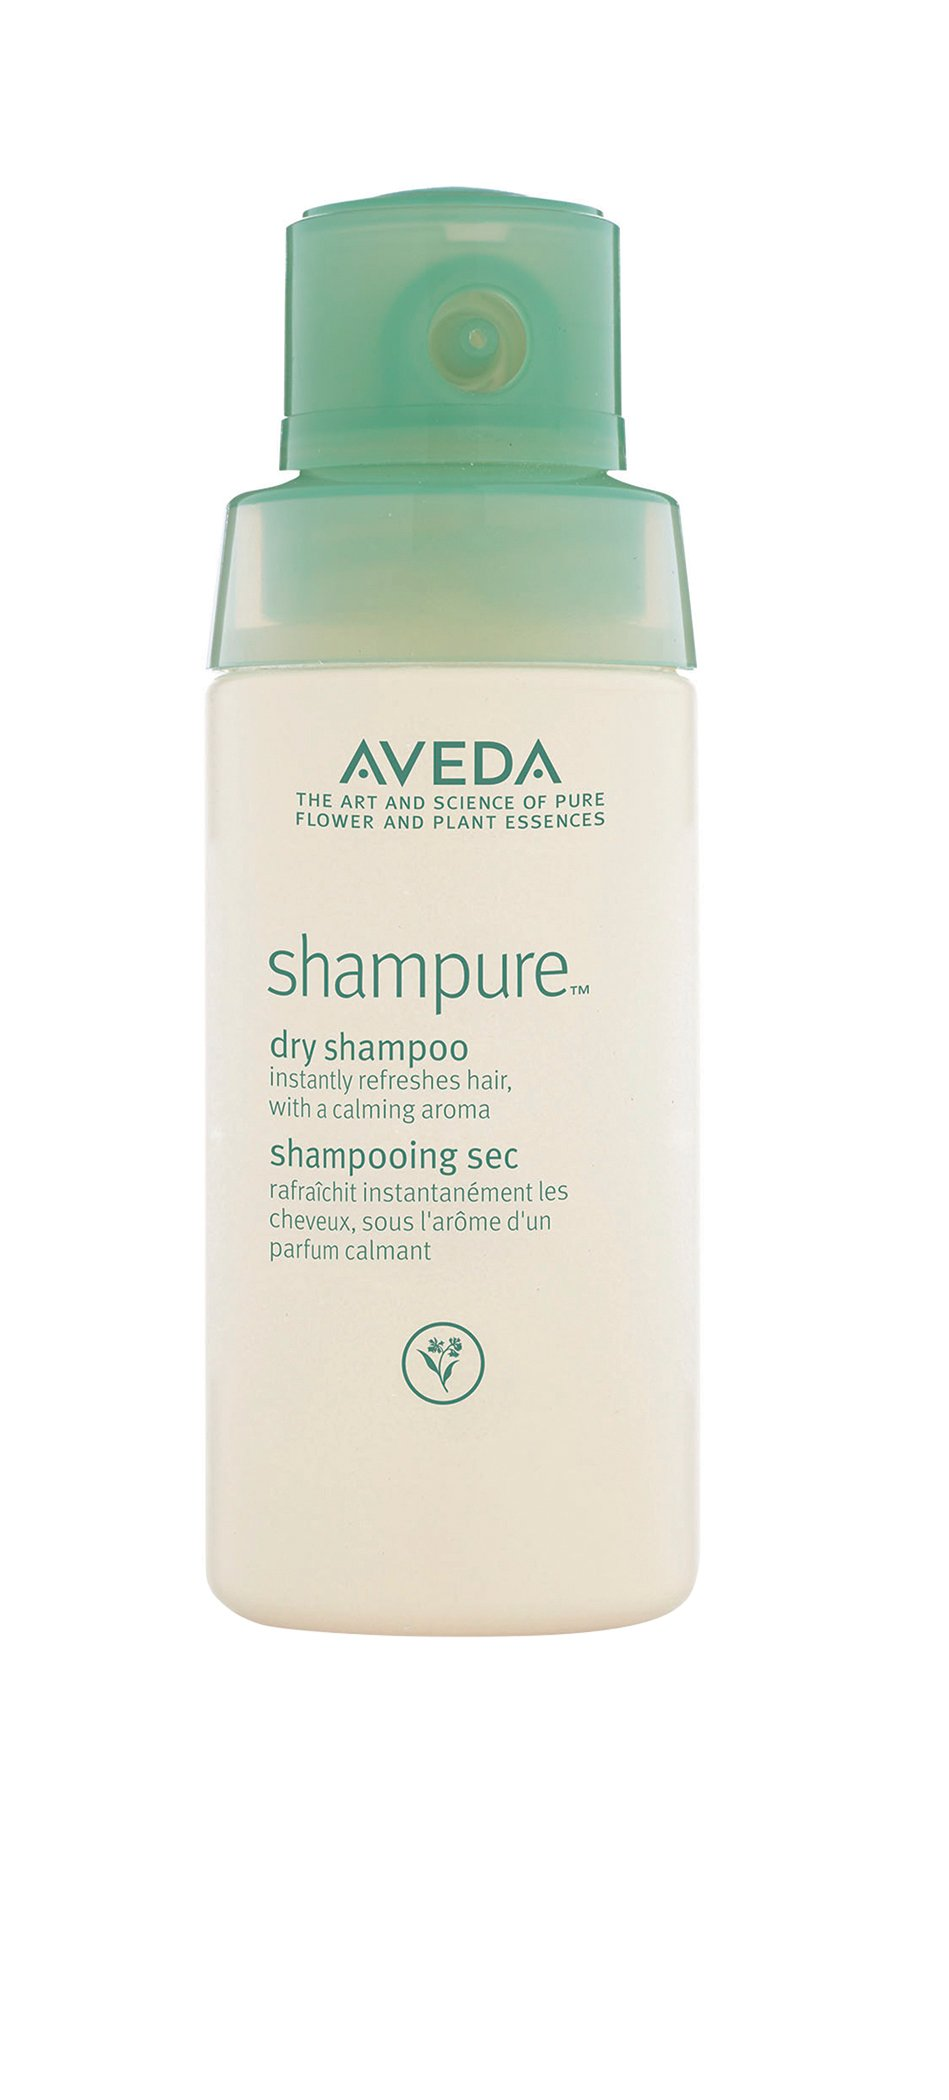 Aveda  Shampure Dry Shampoo is a non-aerosol powder mist that absorbs excess oils and lifts impurities away from the hair. It is a 99.8 percent naturally derived formula.